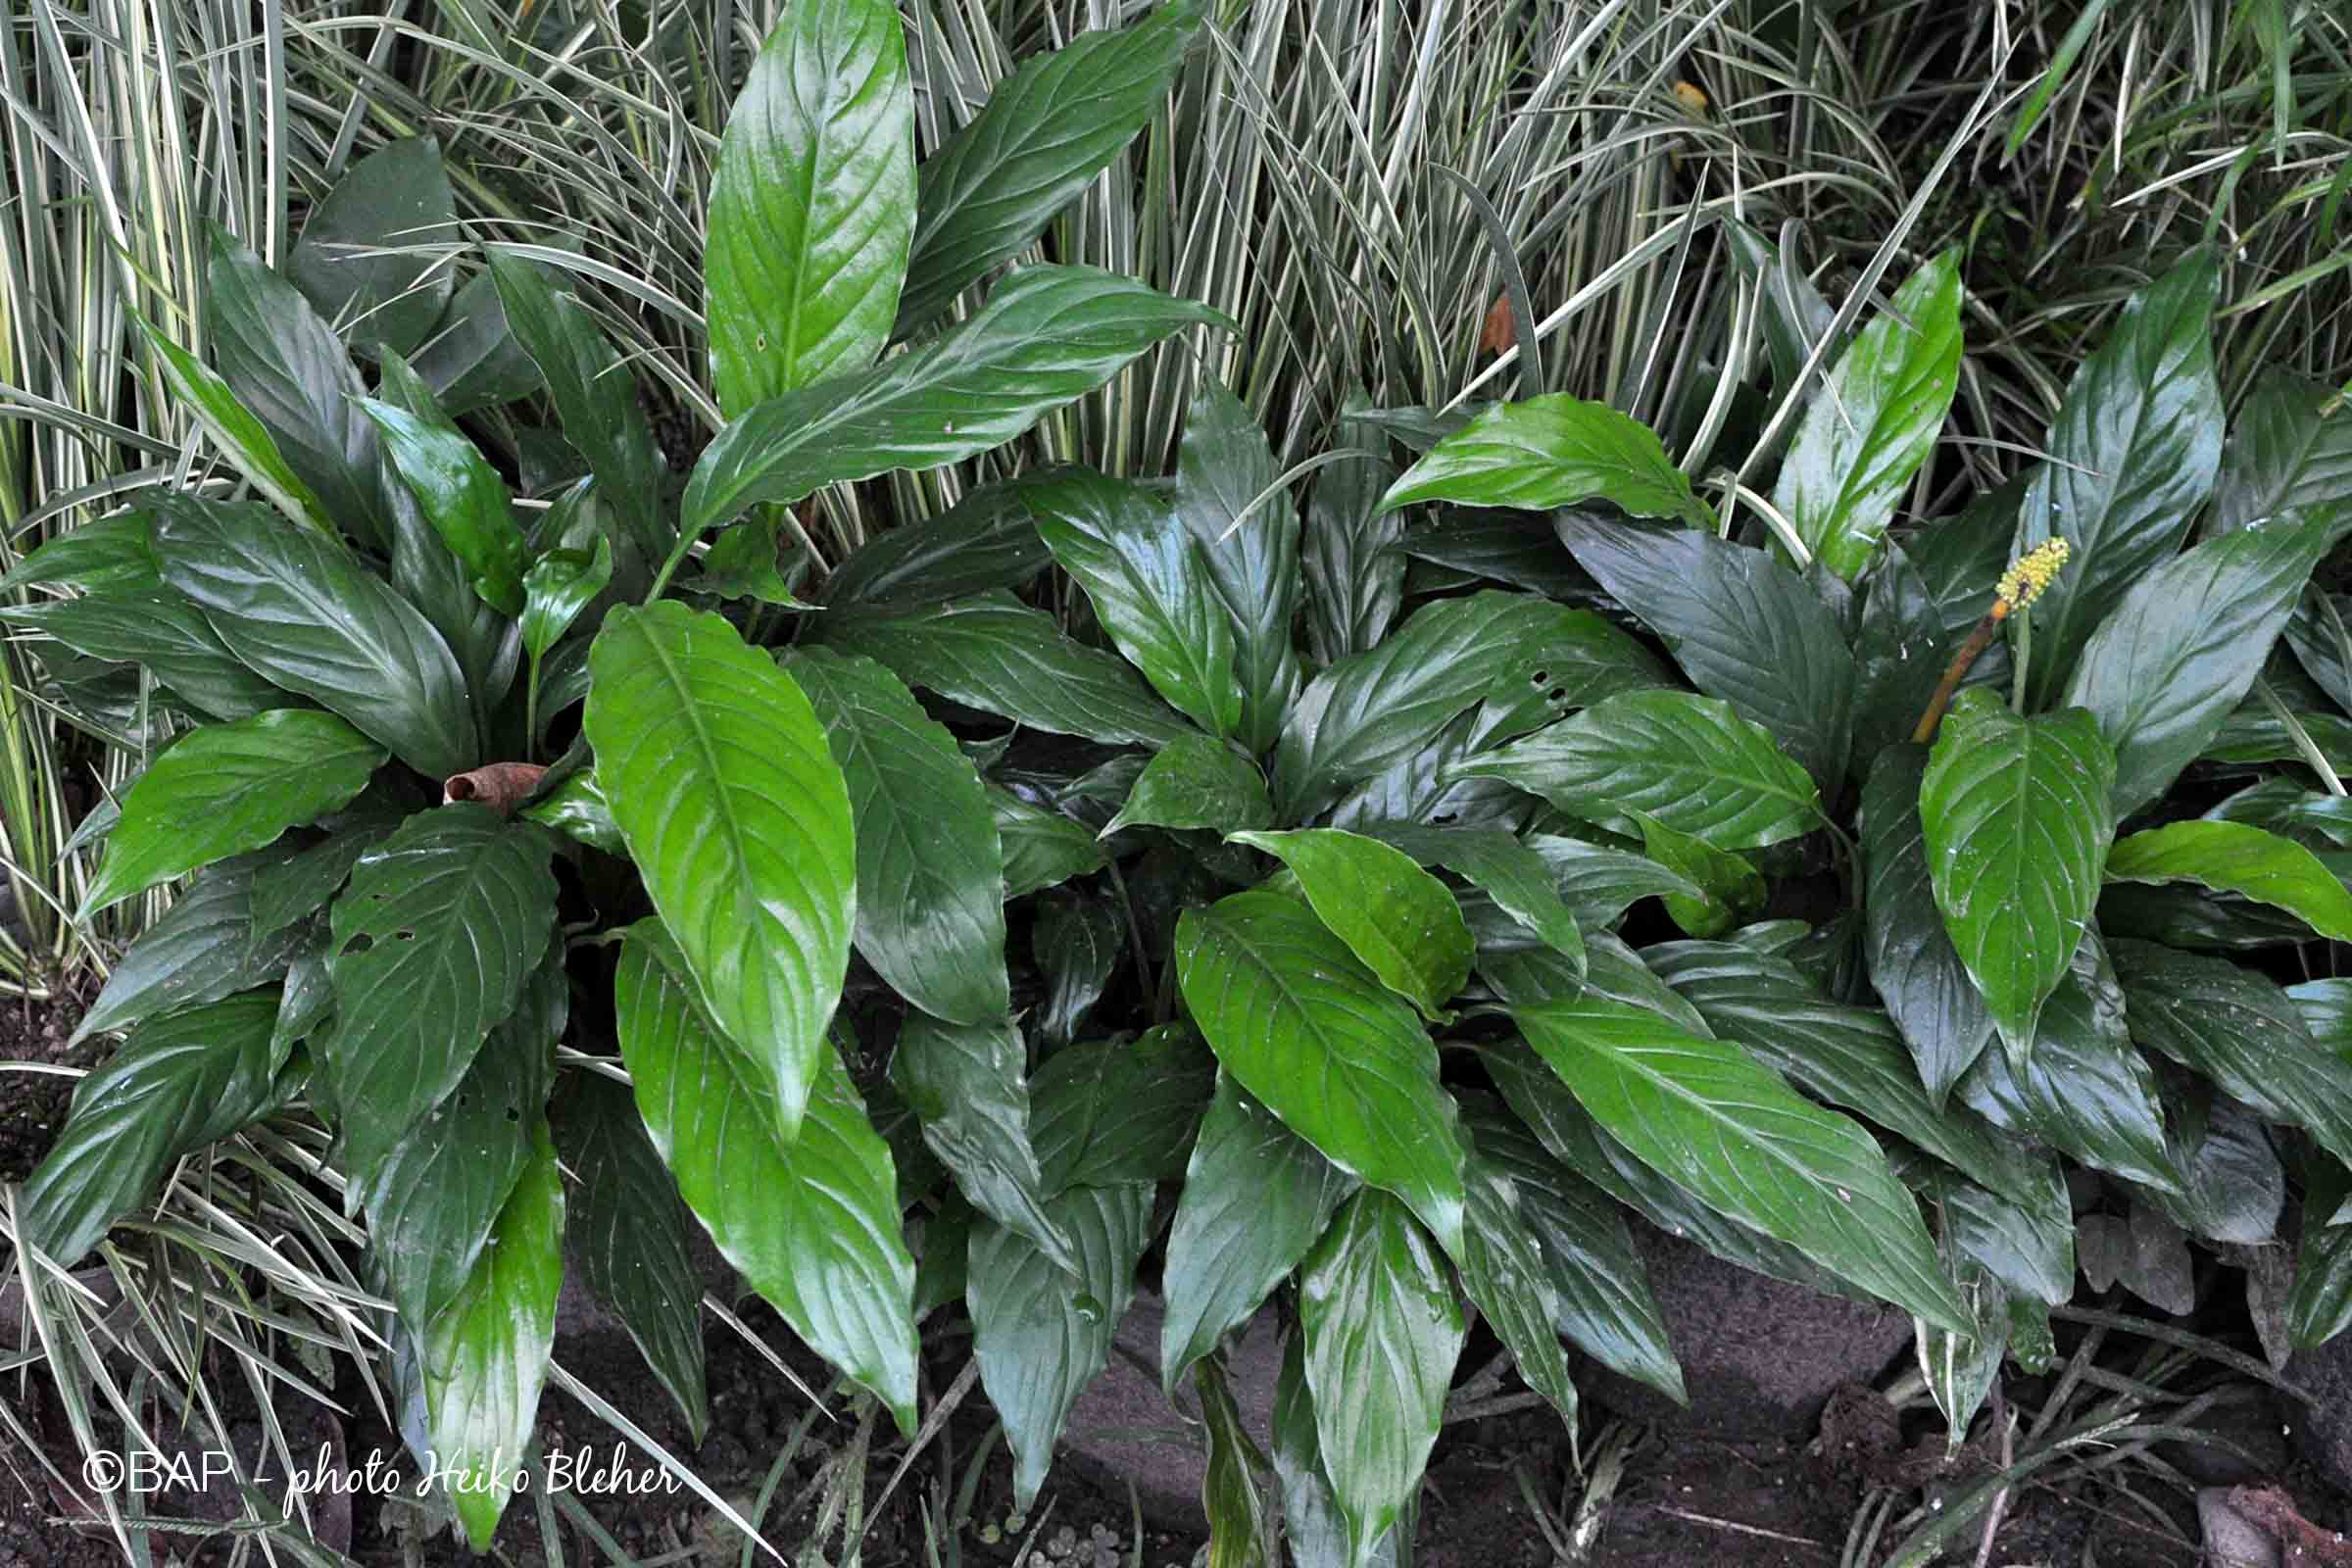 Spathiphyllum wallisii. Photo by H. Bleher